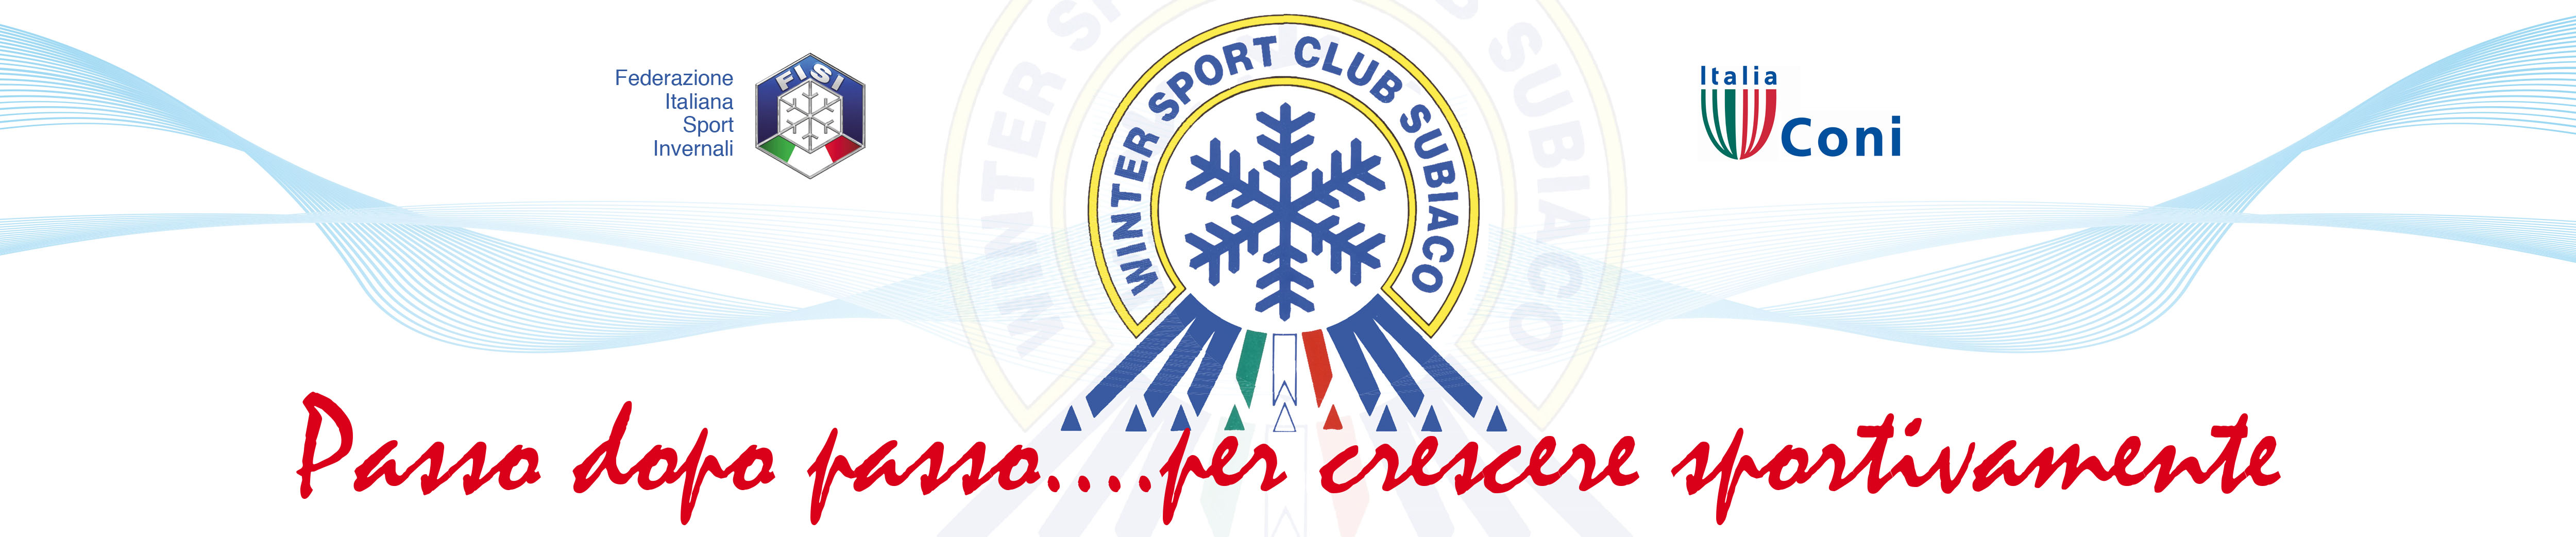 ASD WINTER SPORT CLUB SUBIACO